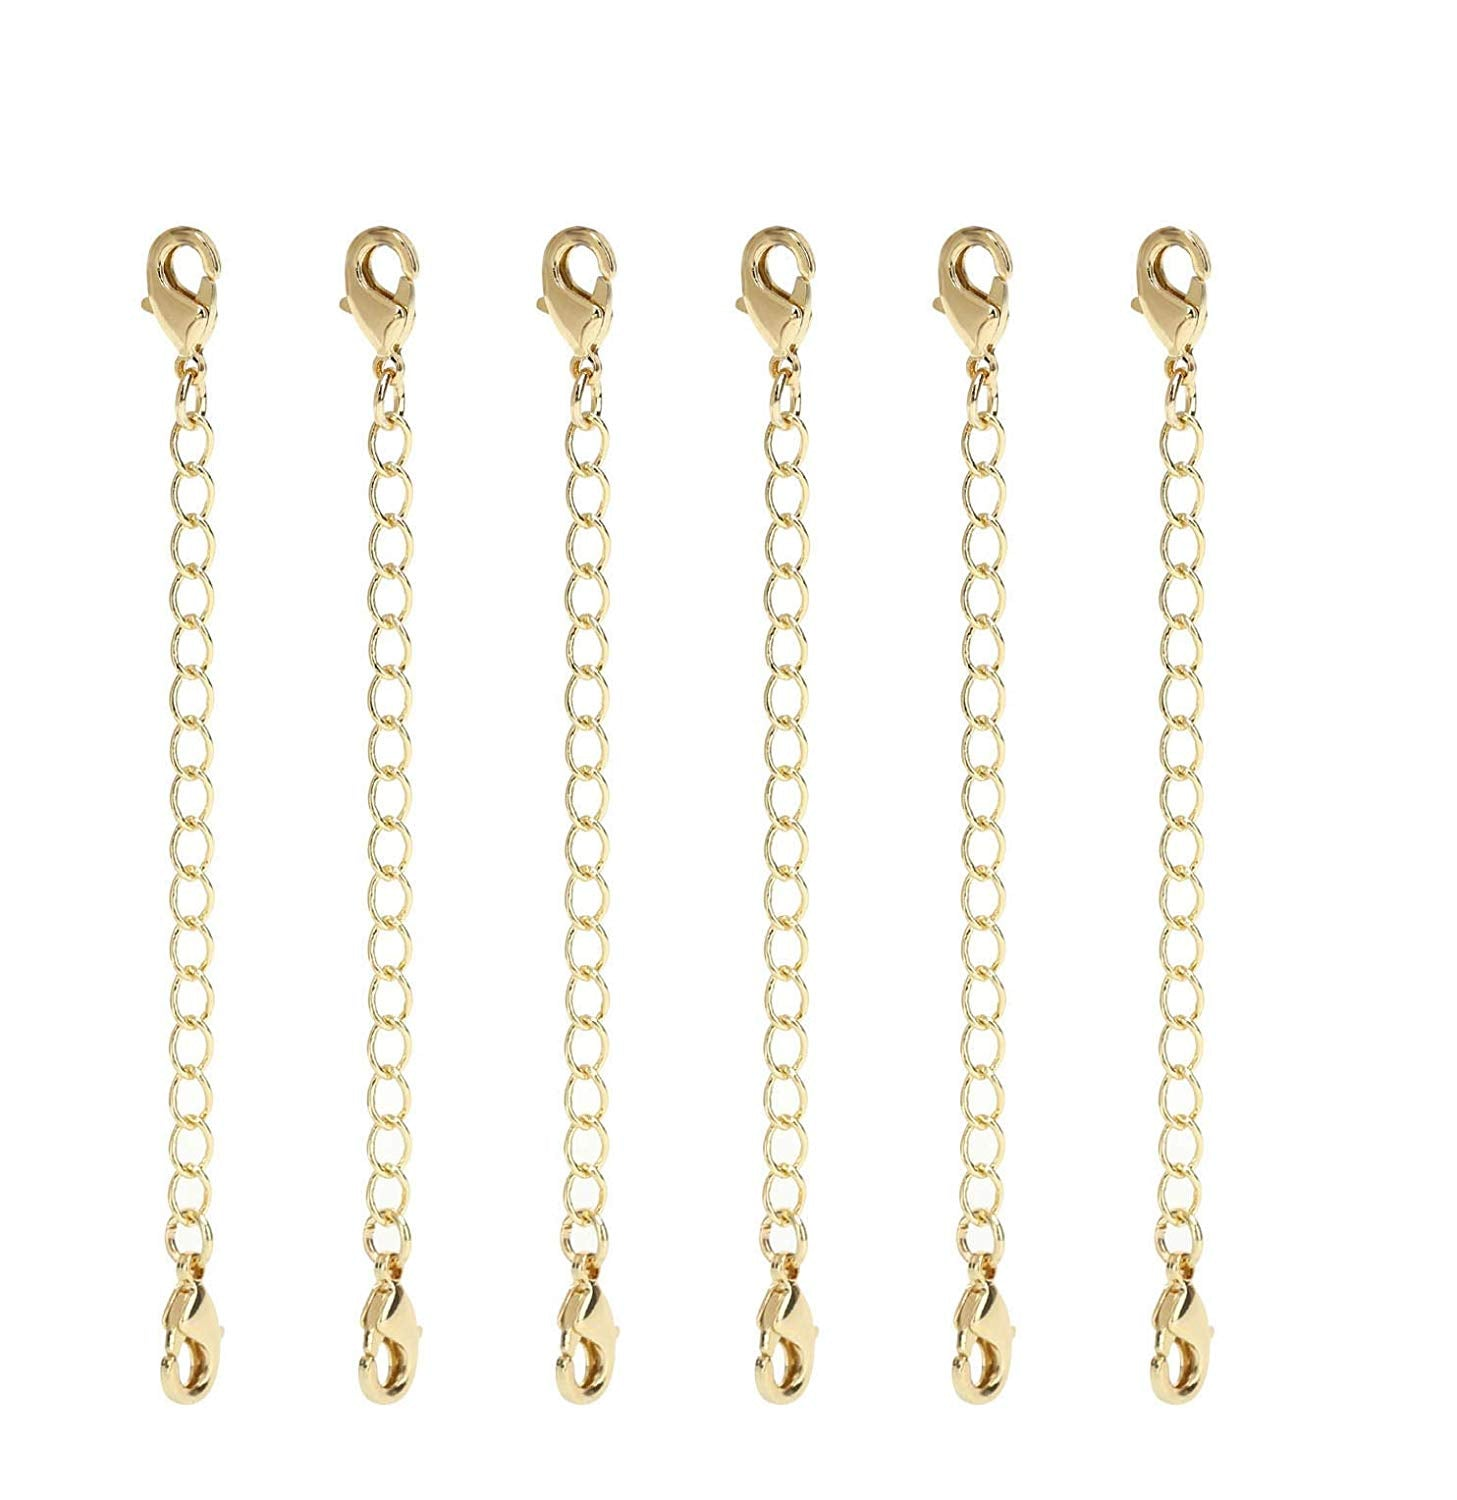 12 PCS 2 Inch Gold Plated Brass Curb Chain Extender with 2 Lobster Claw Clasps